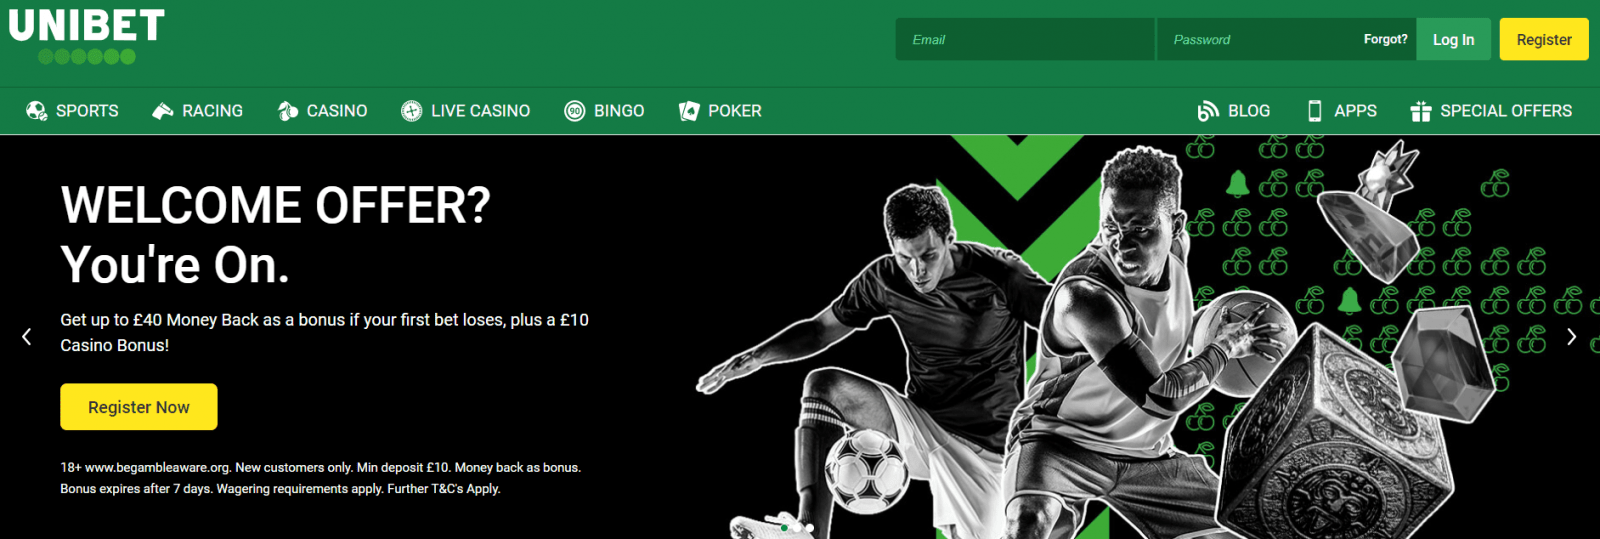 Unibet live betting plus future of media bet on events